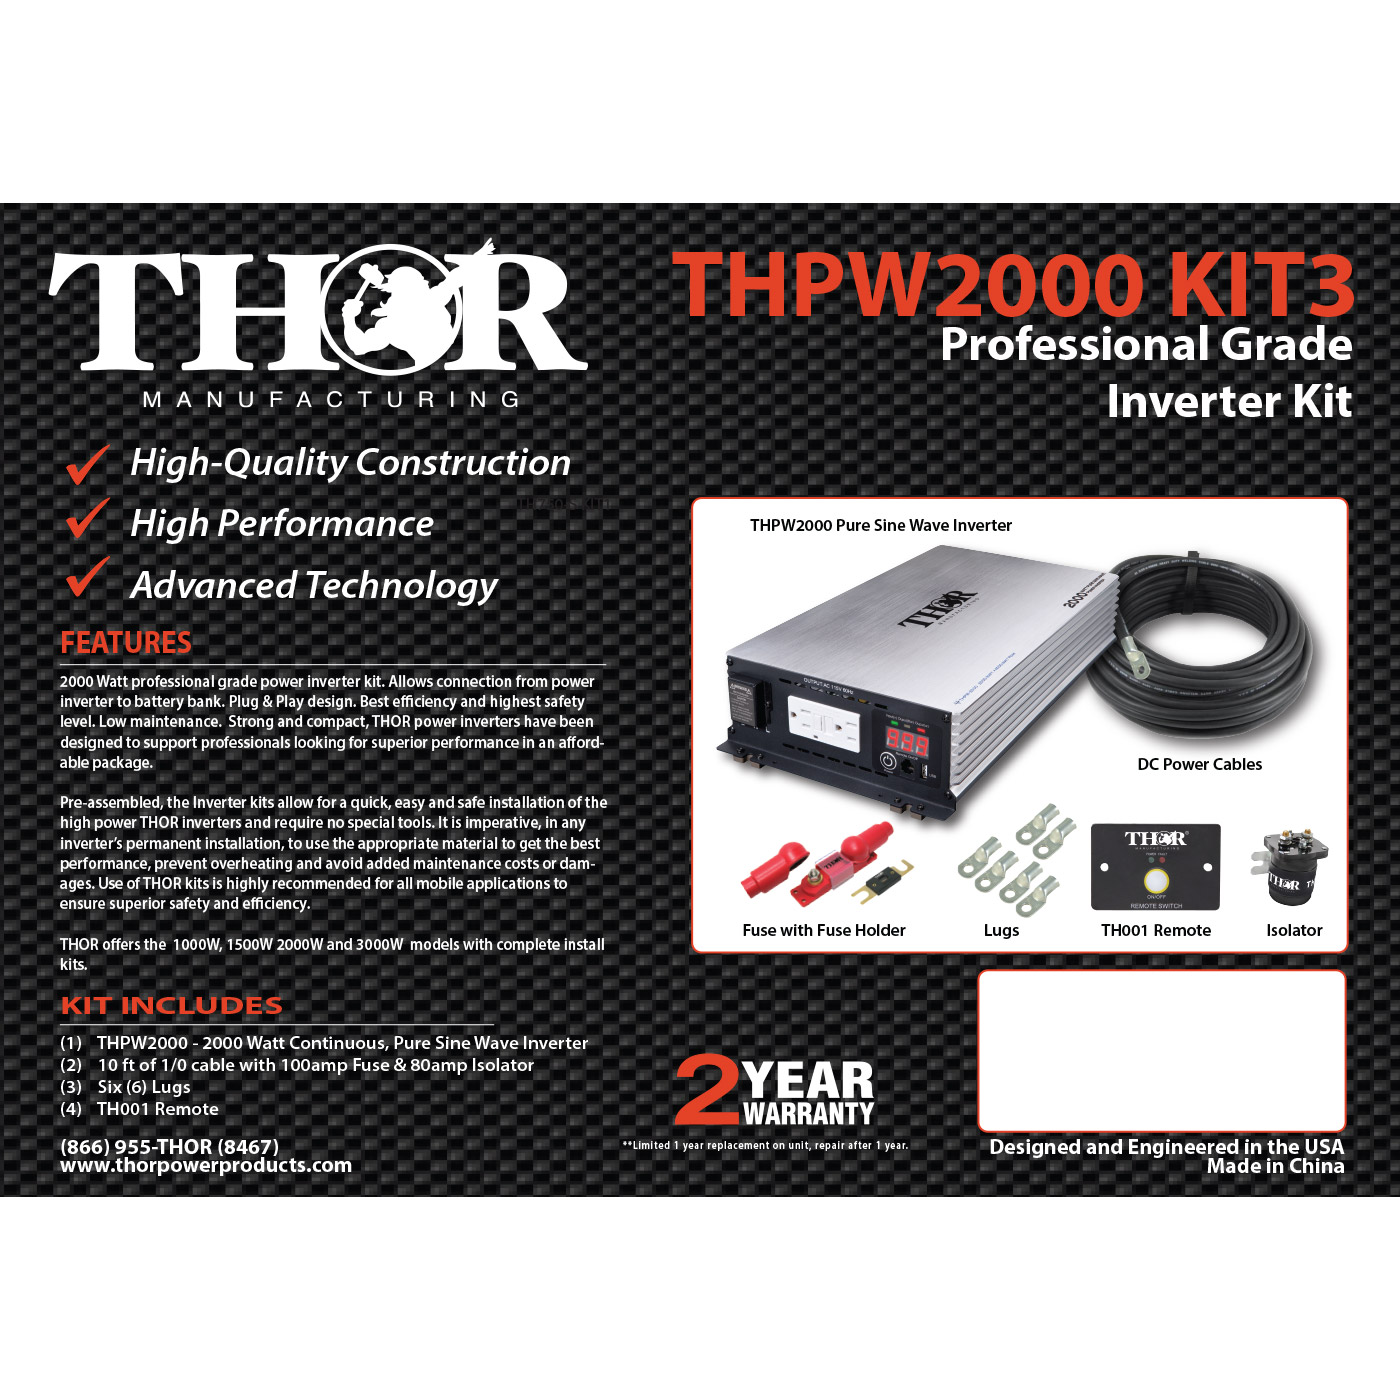 thpw2000kit3-label